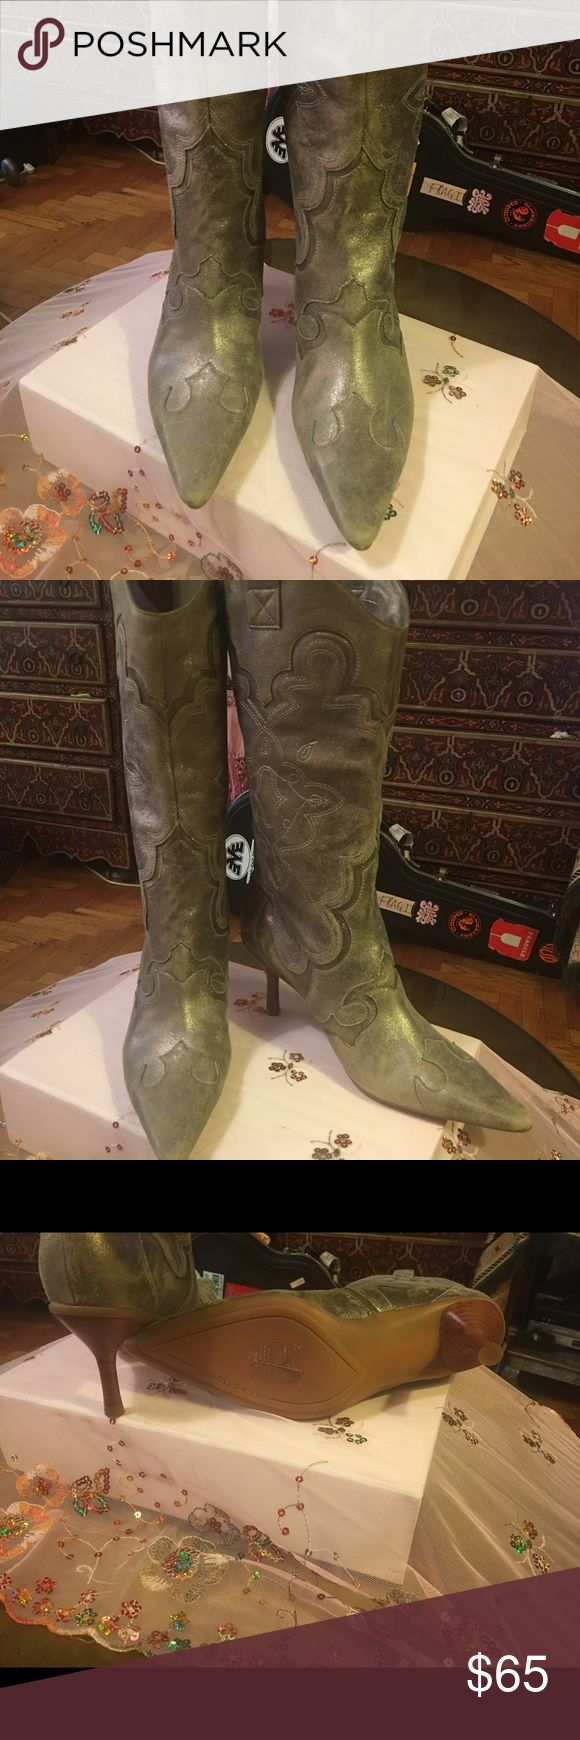 Kenneth Cole Reaction High Heel Cowboy Boot 8.5 Kenneth Cole Reaction High Heel Cowboy Boot 8.5 gorgeous metallic brand new never worn Dressy boots! Kenneth Cole Reaction Shoes Heeled Boots